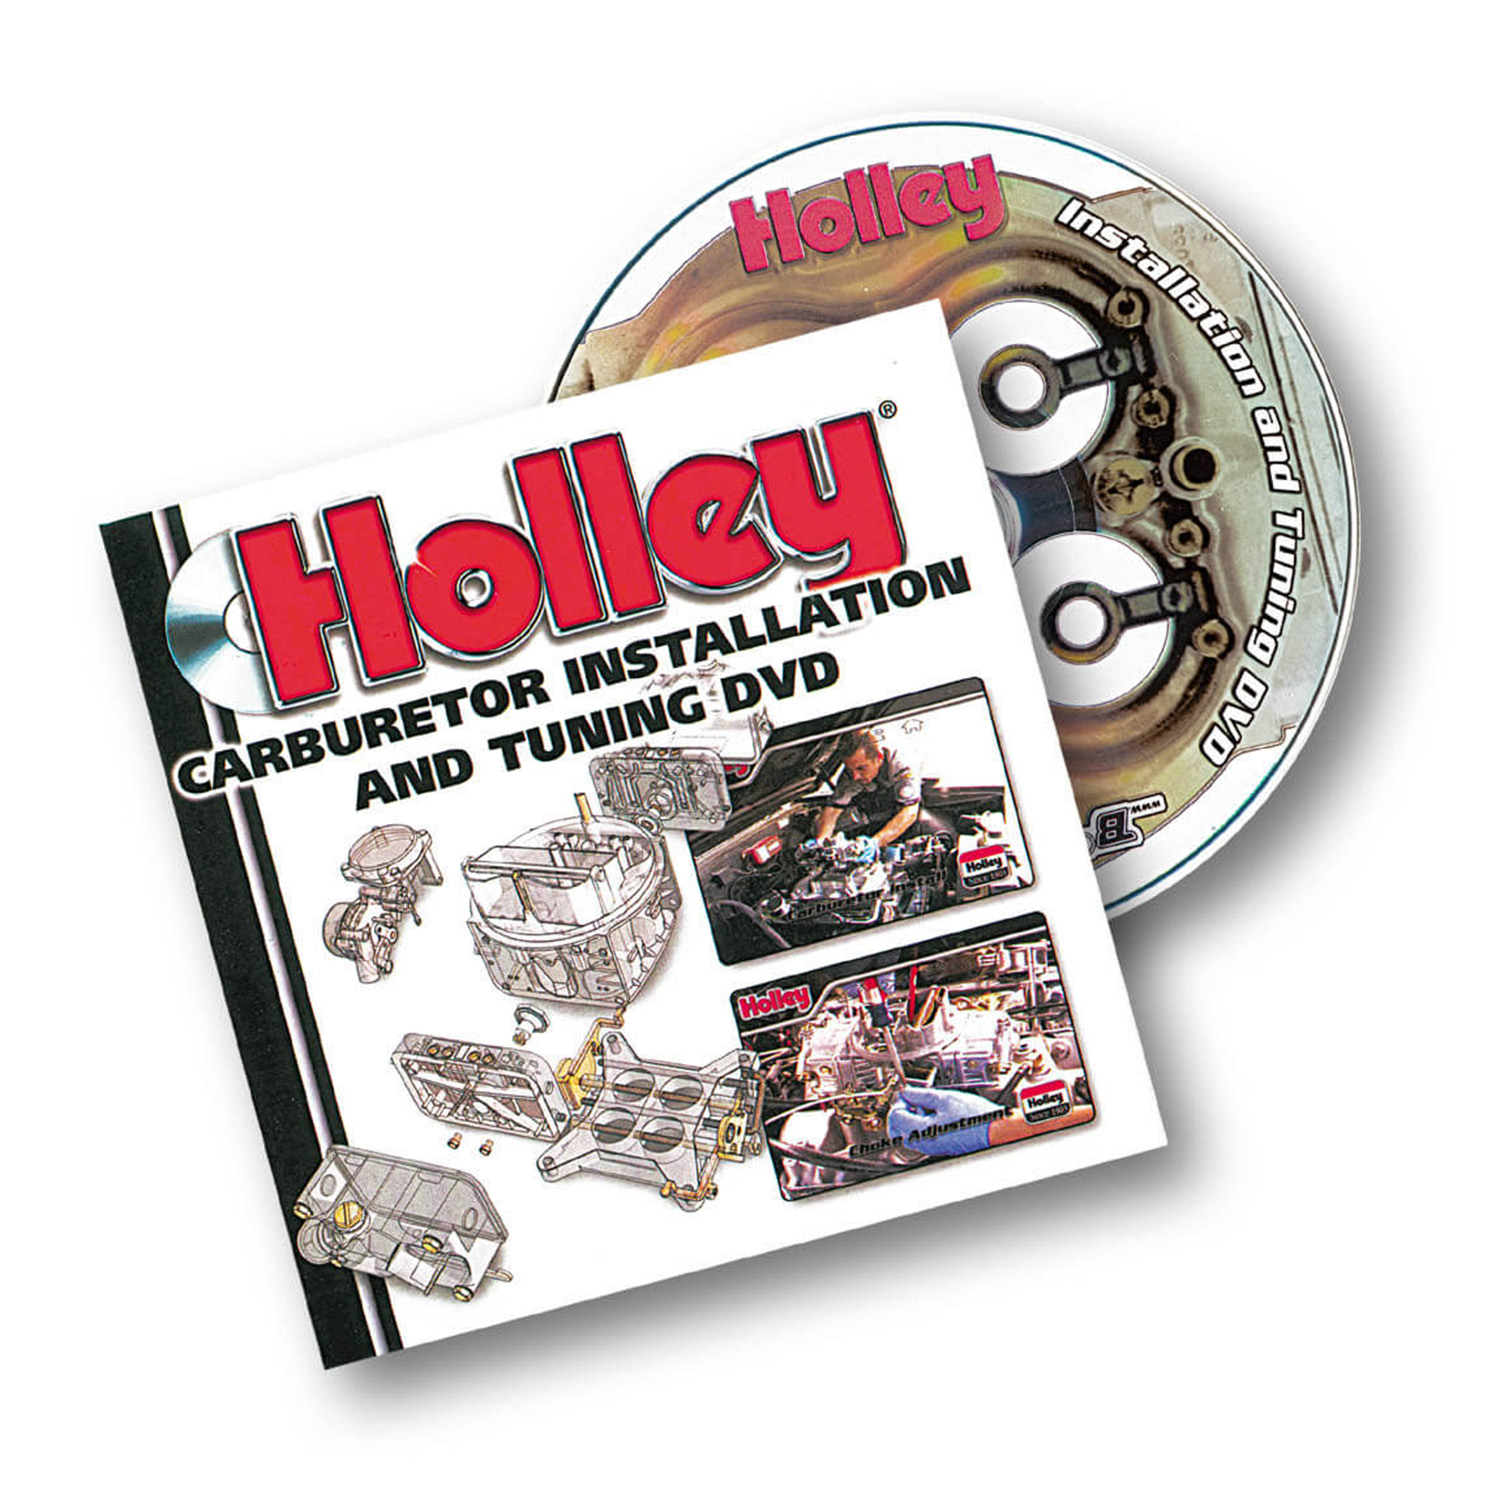 holley carb tuning book